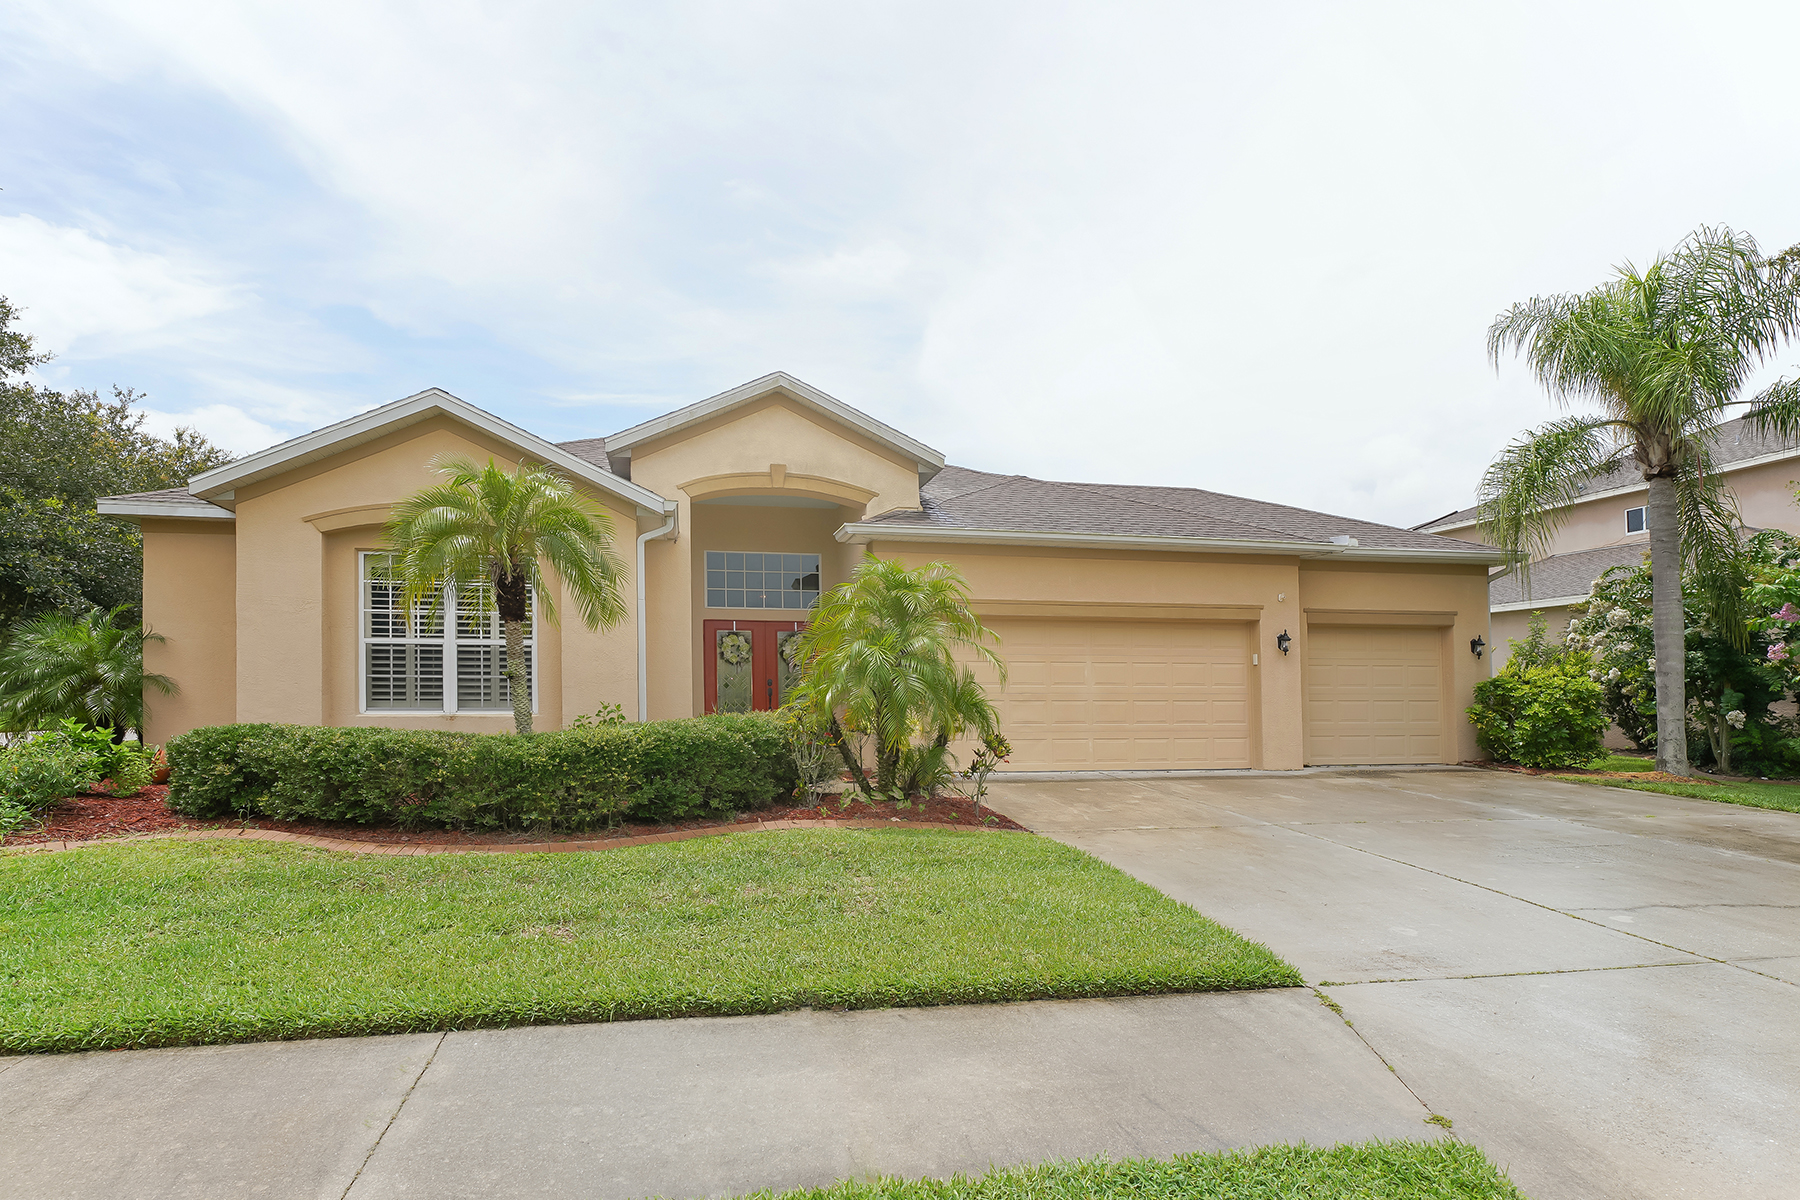 Single Family Homes for Sale at KINGSFIELD LAKES 11524 Walden Loop Parrish, Florida 34219 United States